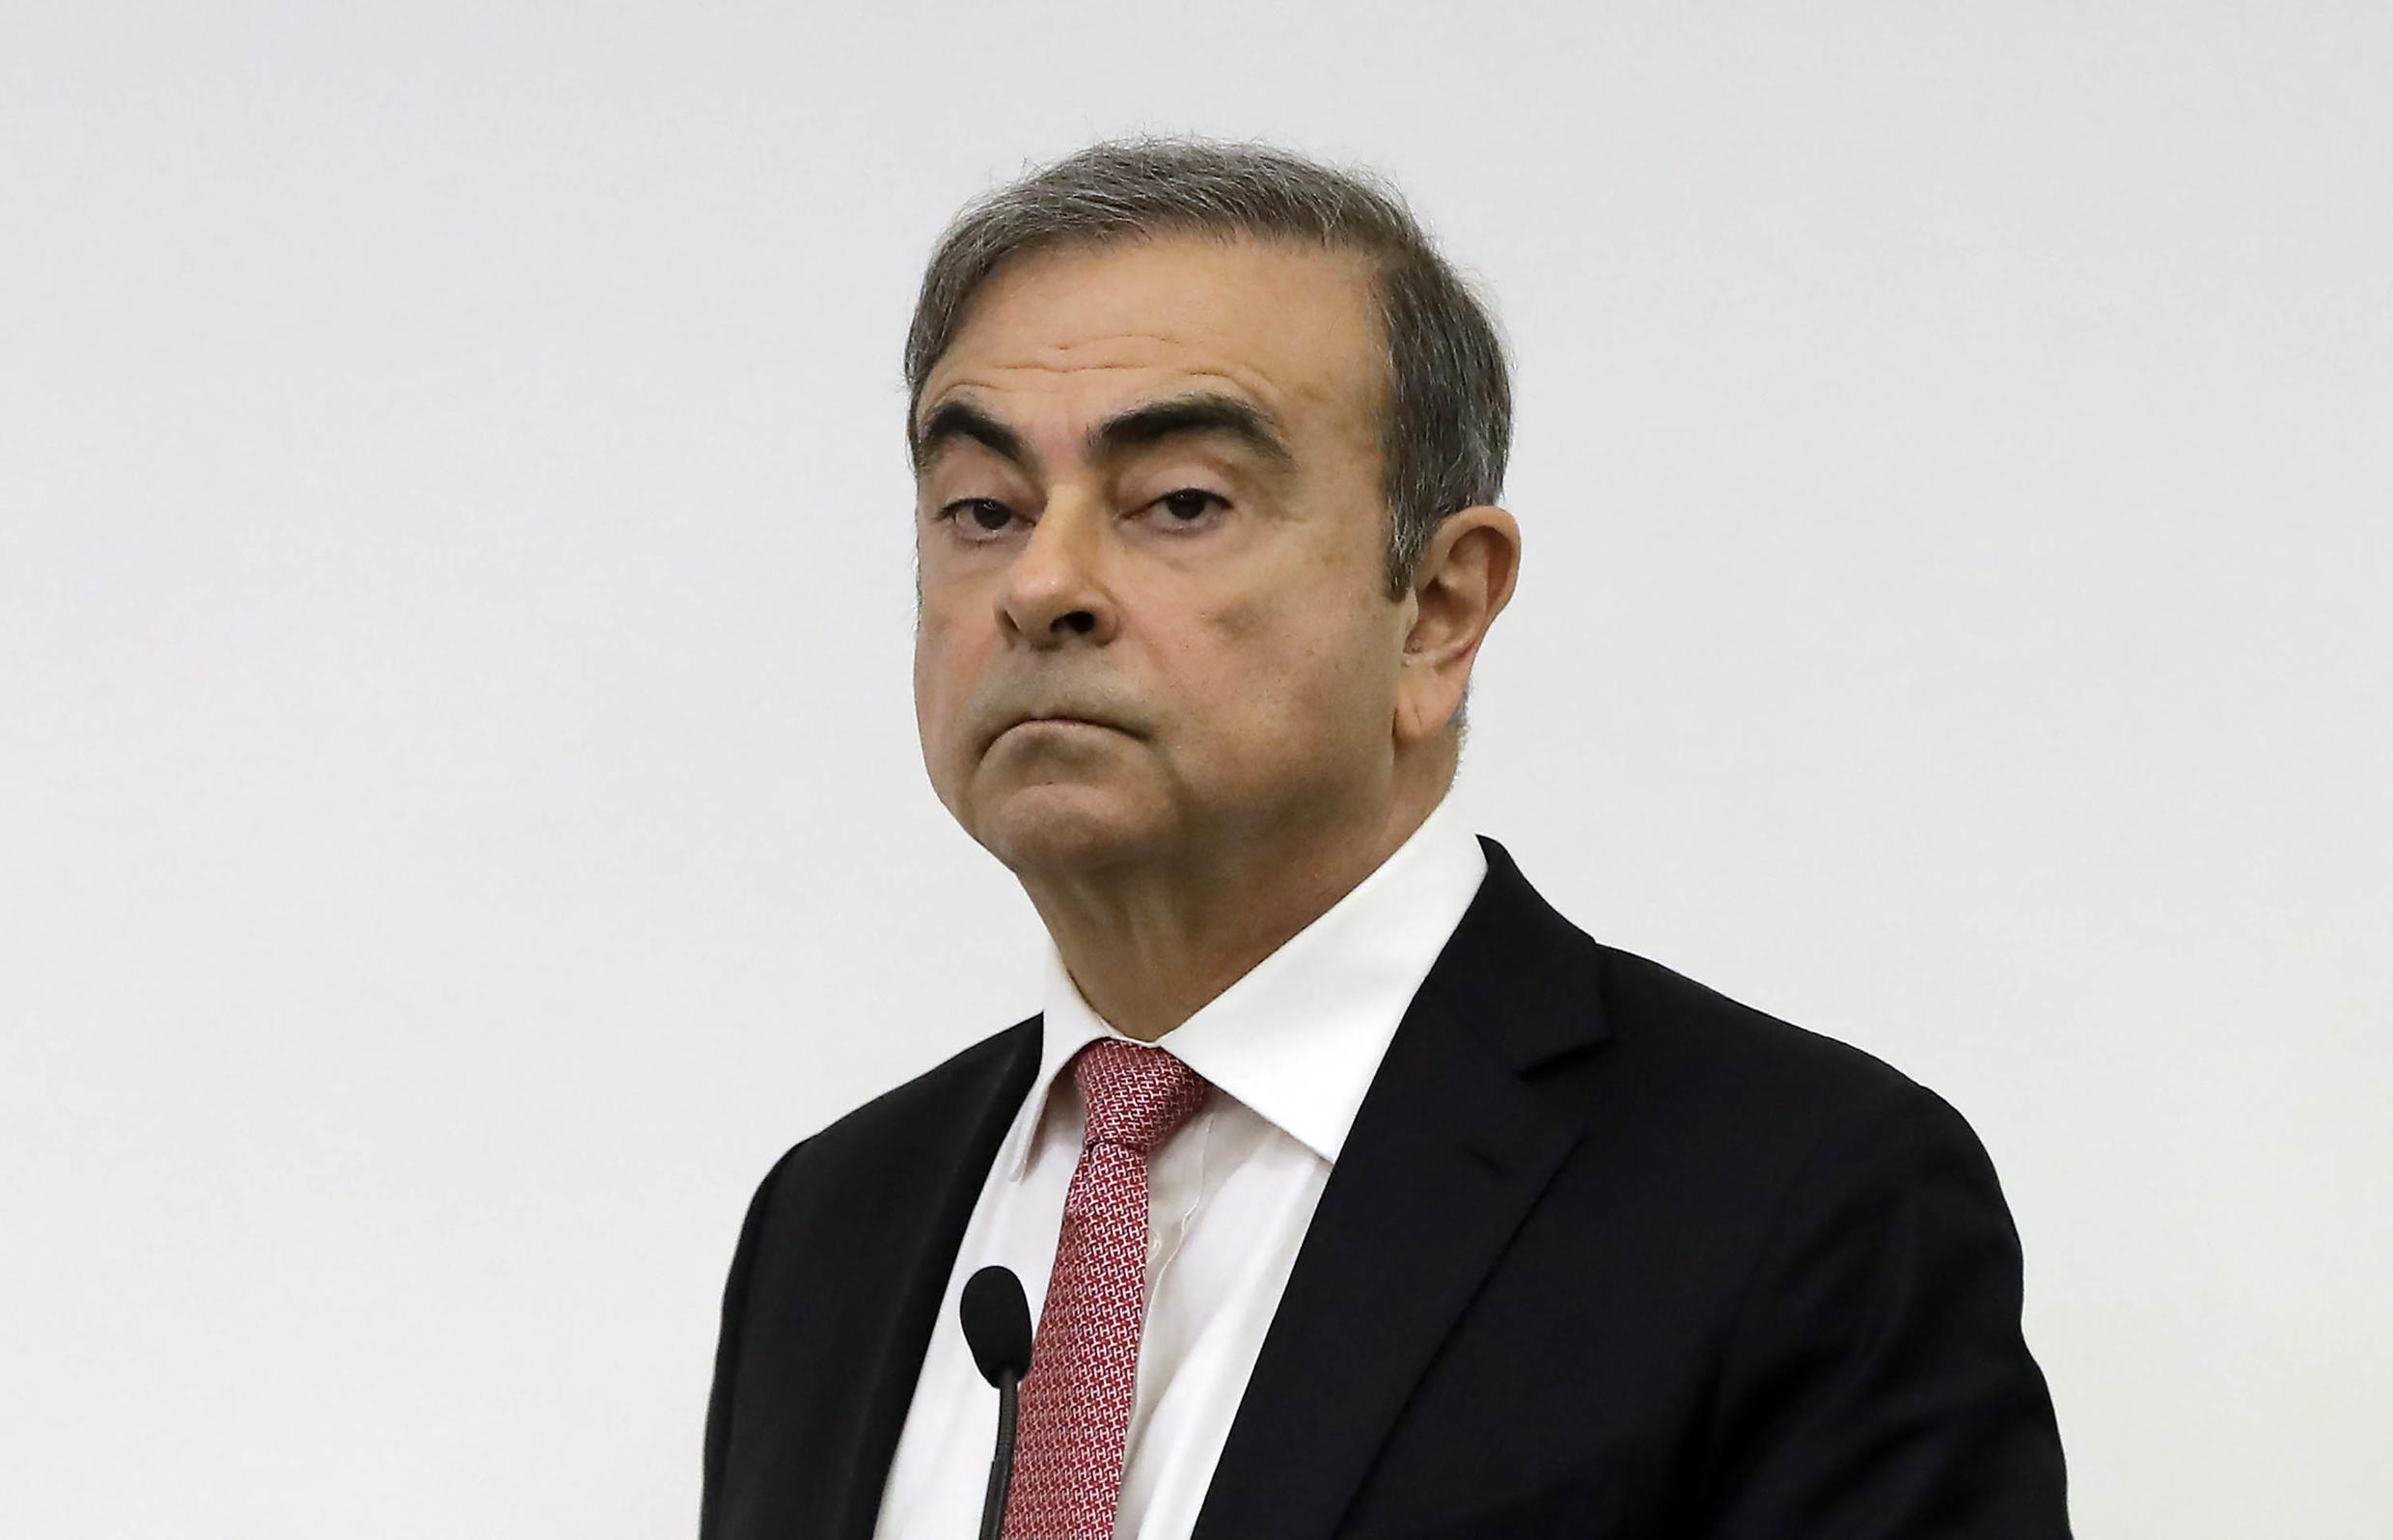 Fugitive auto tycoon Carlos Ghosn is wanted by Japan on charges of financial misconduct but remains at large in Lebanon, where he fled while on bail.